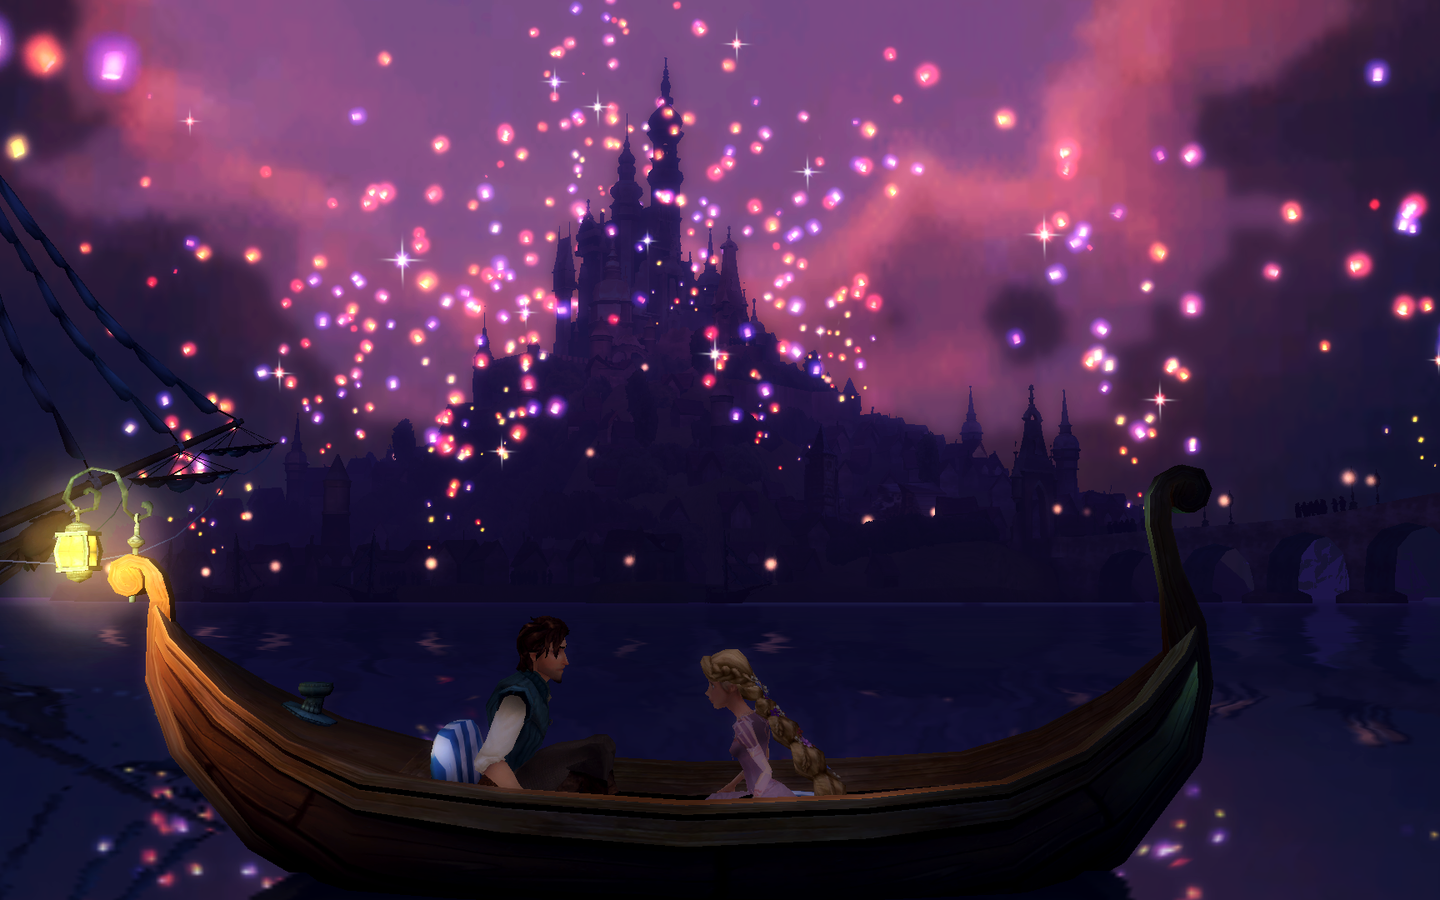 Free Download Tangled Lanterns Wallpaper Disney Tangled By Nylah22 1600x900 For Your Desktop Mobile Tablet Explore 48 Tangled Floating Lanterns Desktop Wallpaper Rapunzel Wallpaper Disney Tangled Wallpaper Tangled Rapunzel Wallpaper